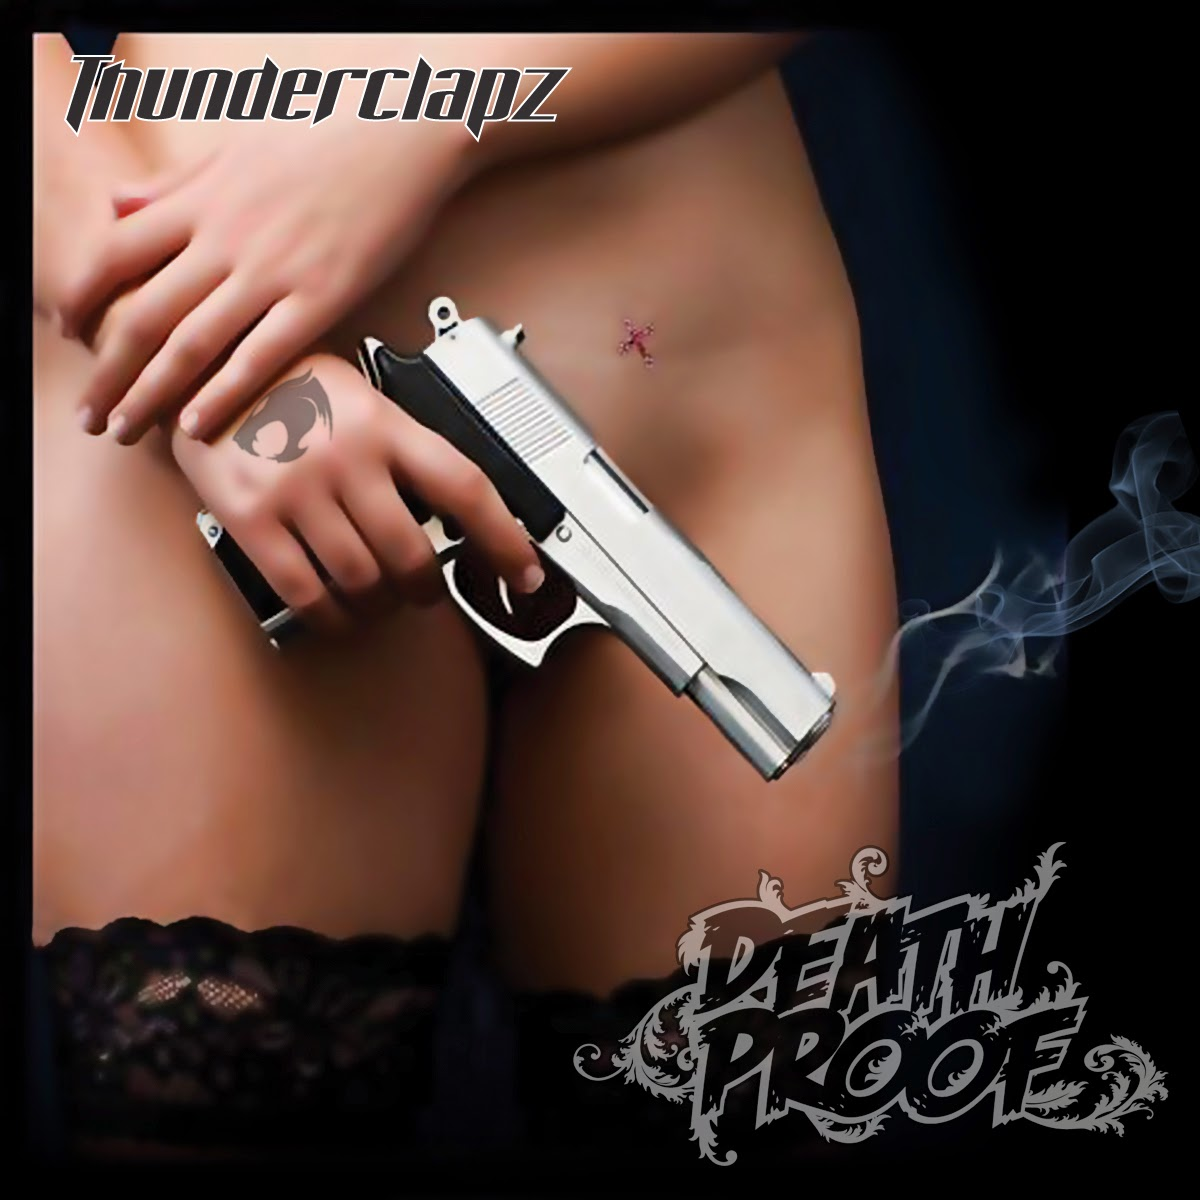 Thunderclapz - Death Proof [2011]